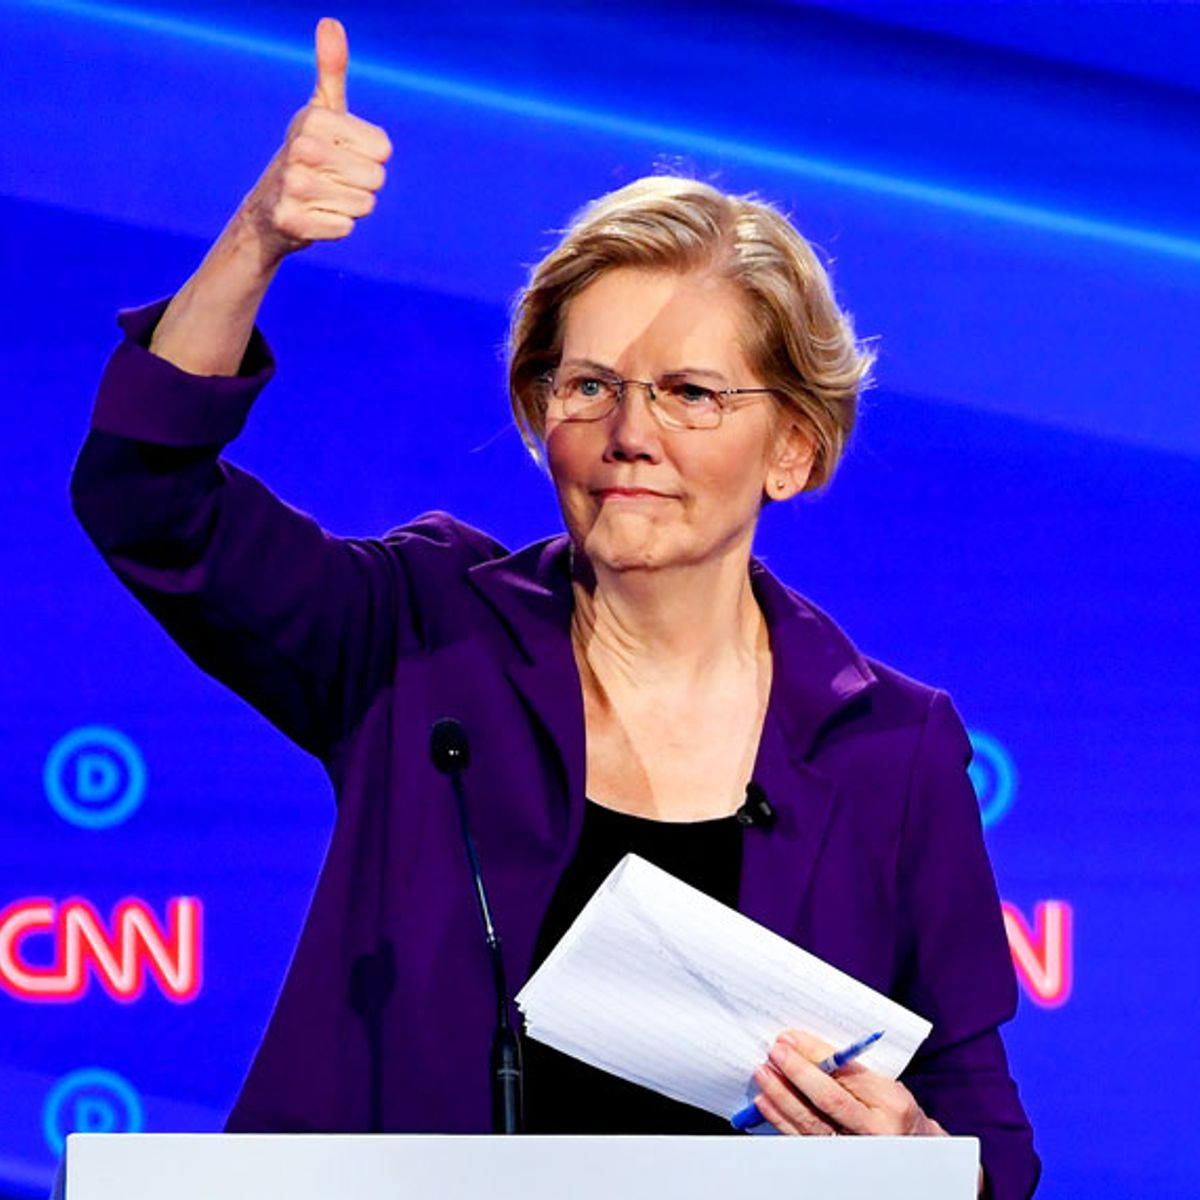 Questions for Elizabeth Warren: Now that you're the frontrunner, we need to talk